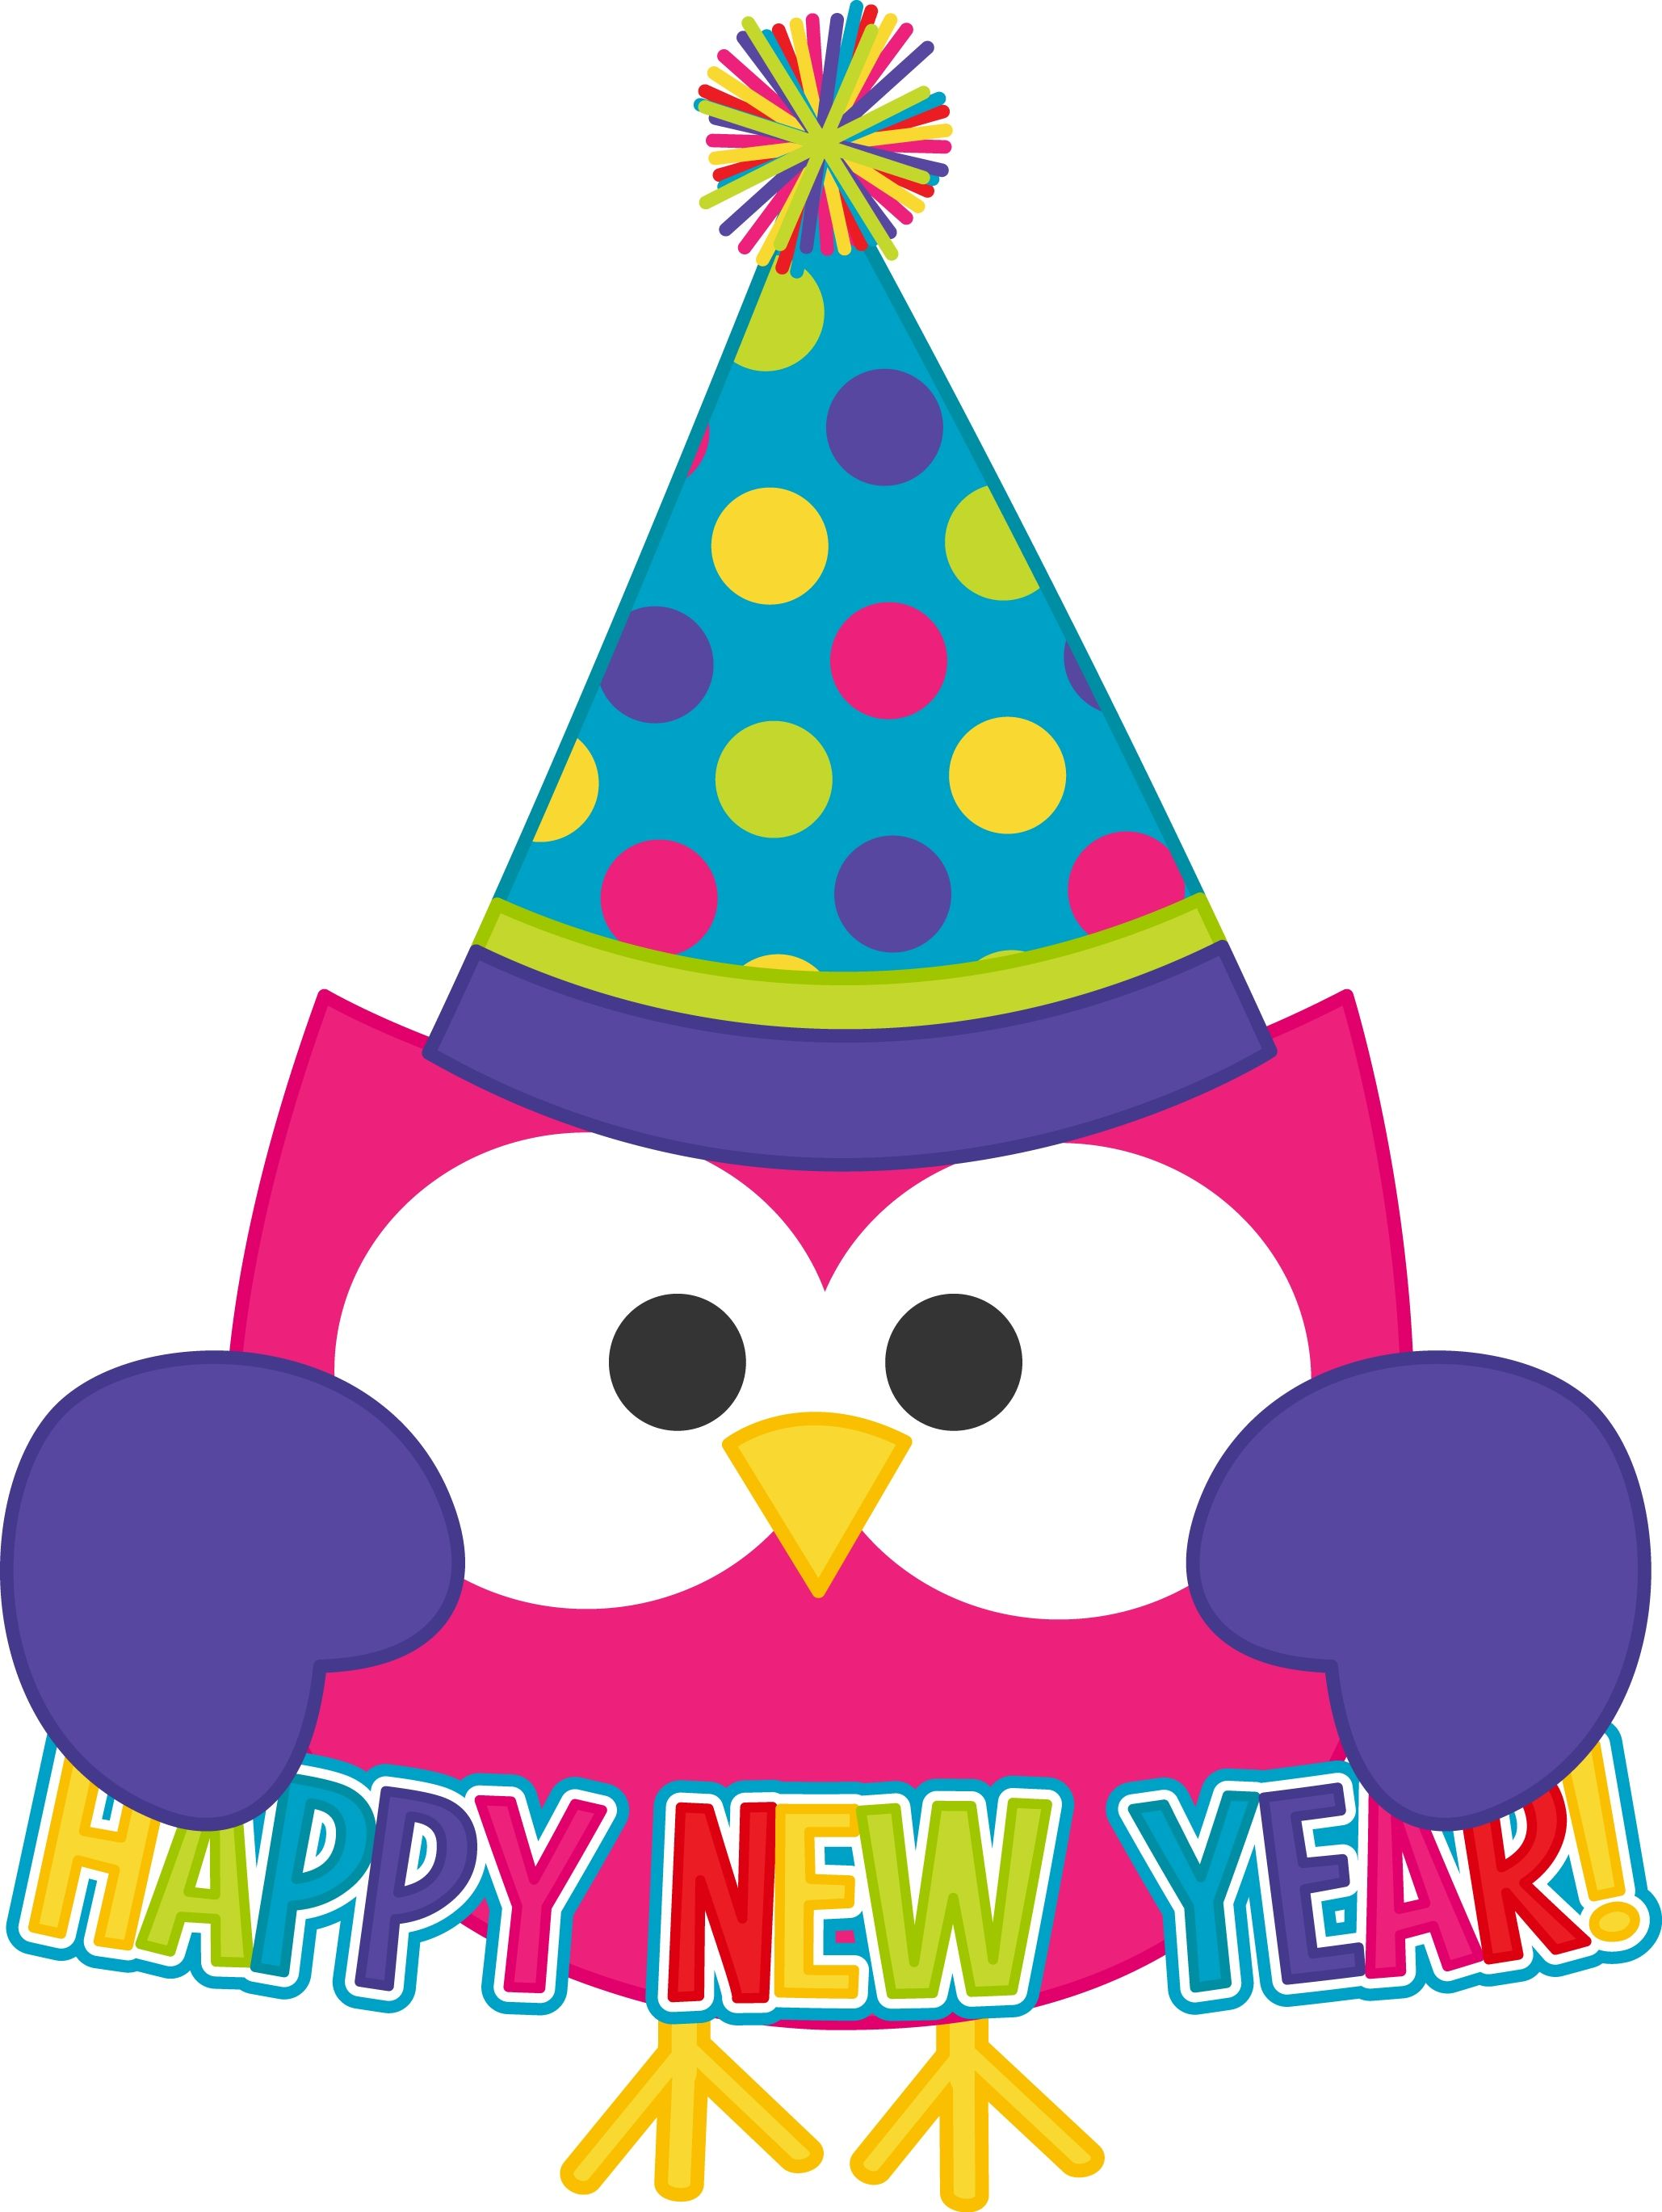 Owls new years.